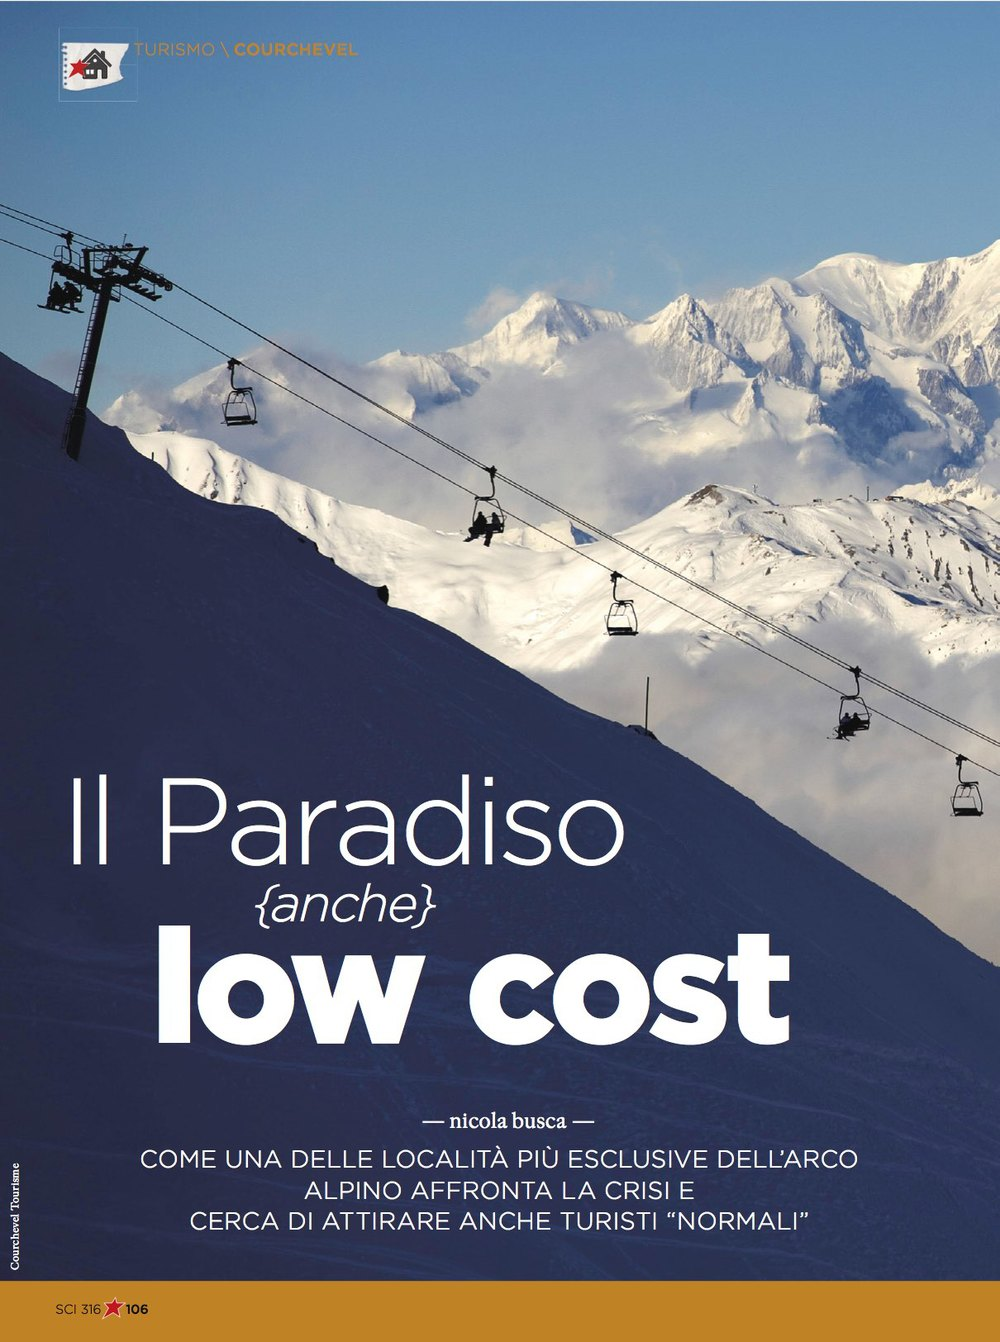 Courchevel on a budget